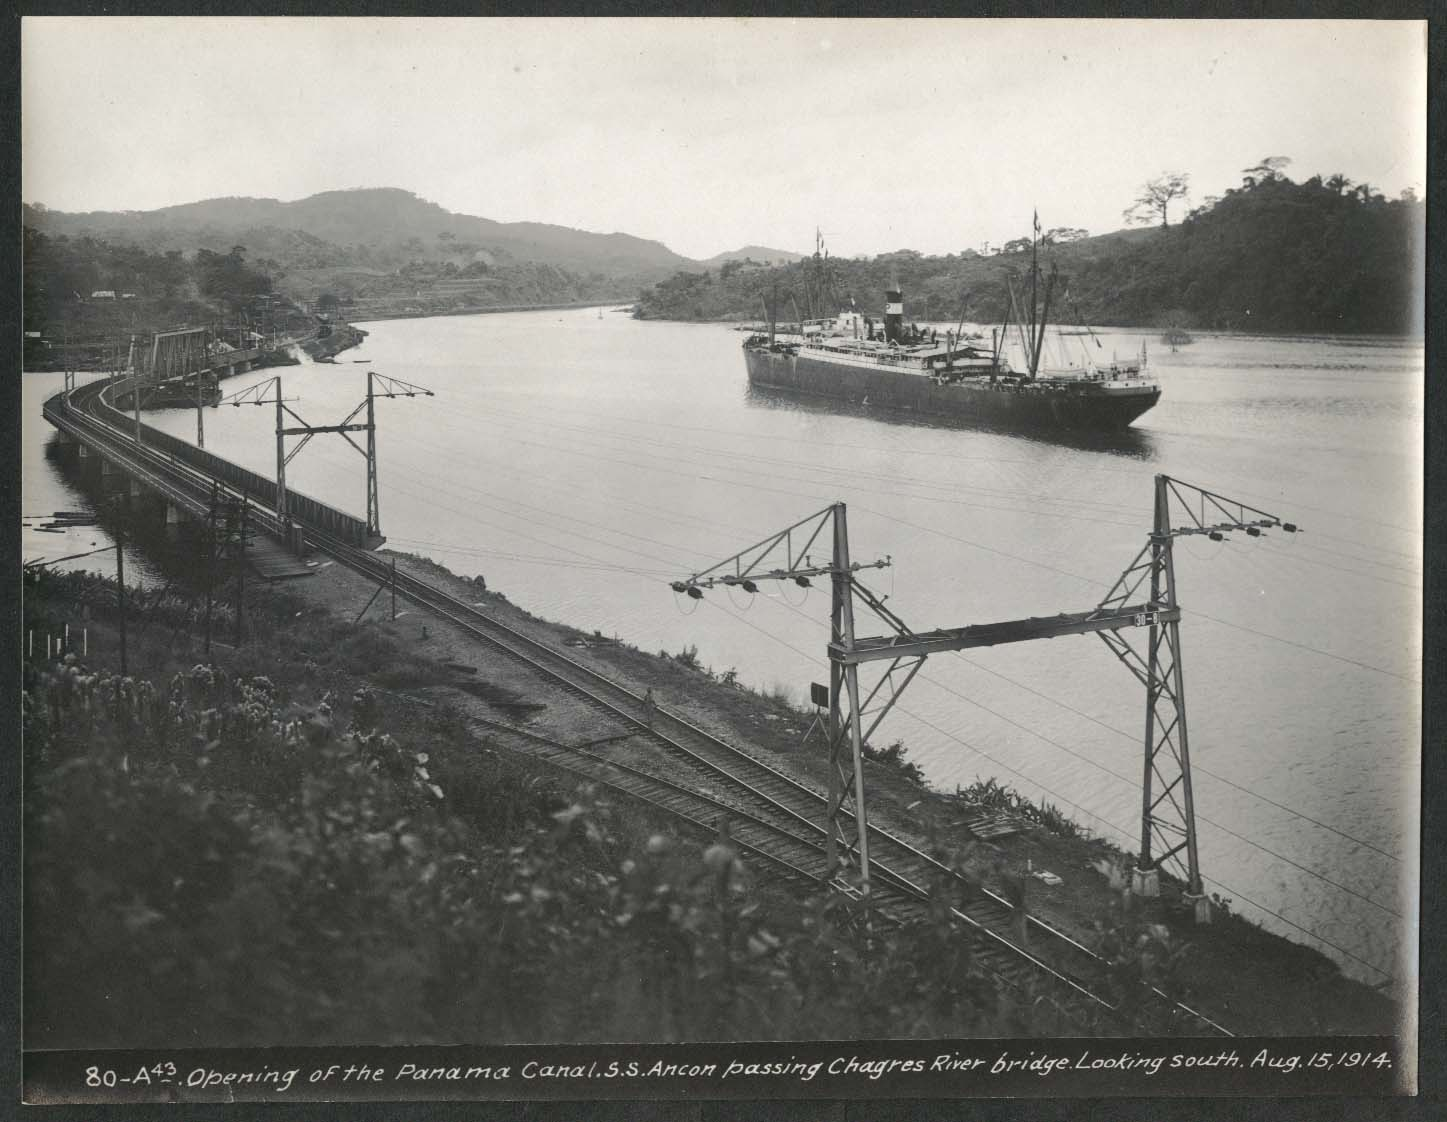 Image for Panama Canal photo 1914 Opening of canal S S Ancon passes Chagres River Bridge